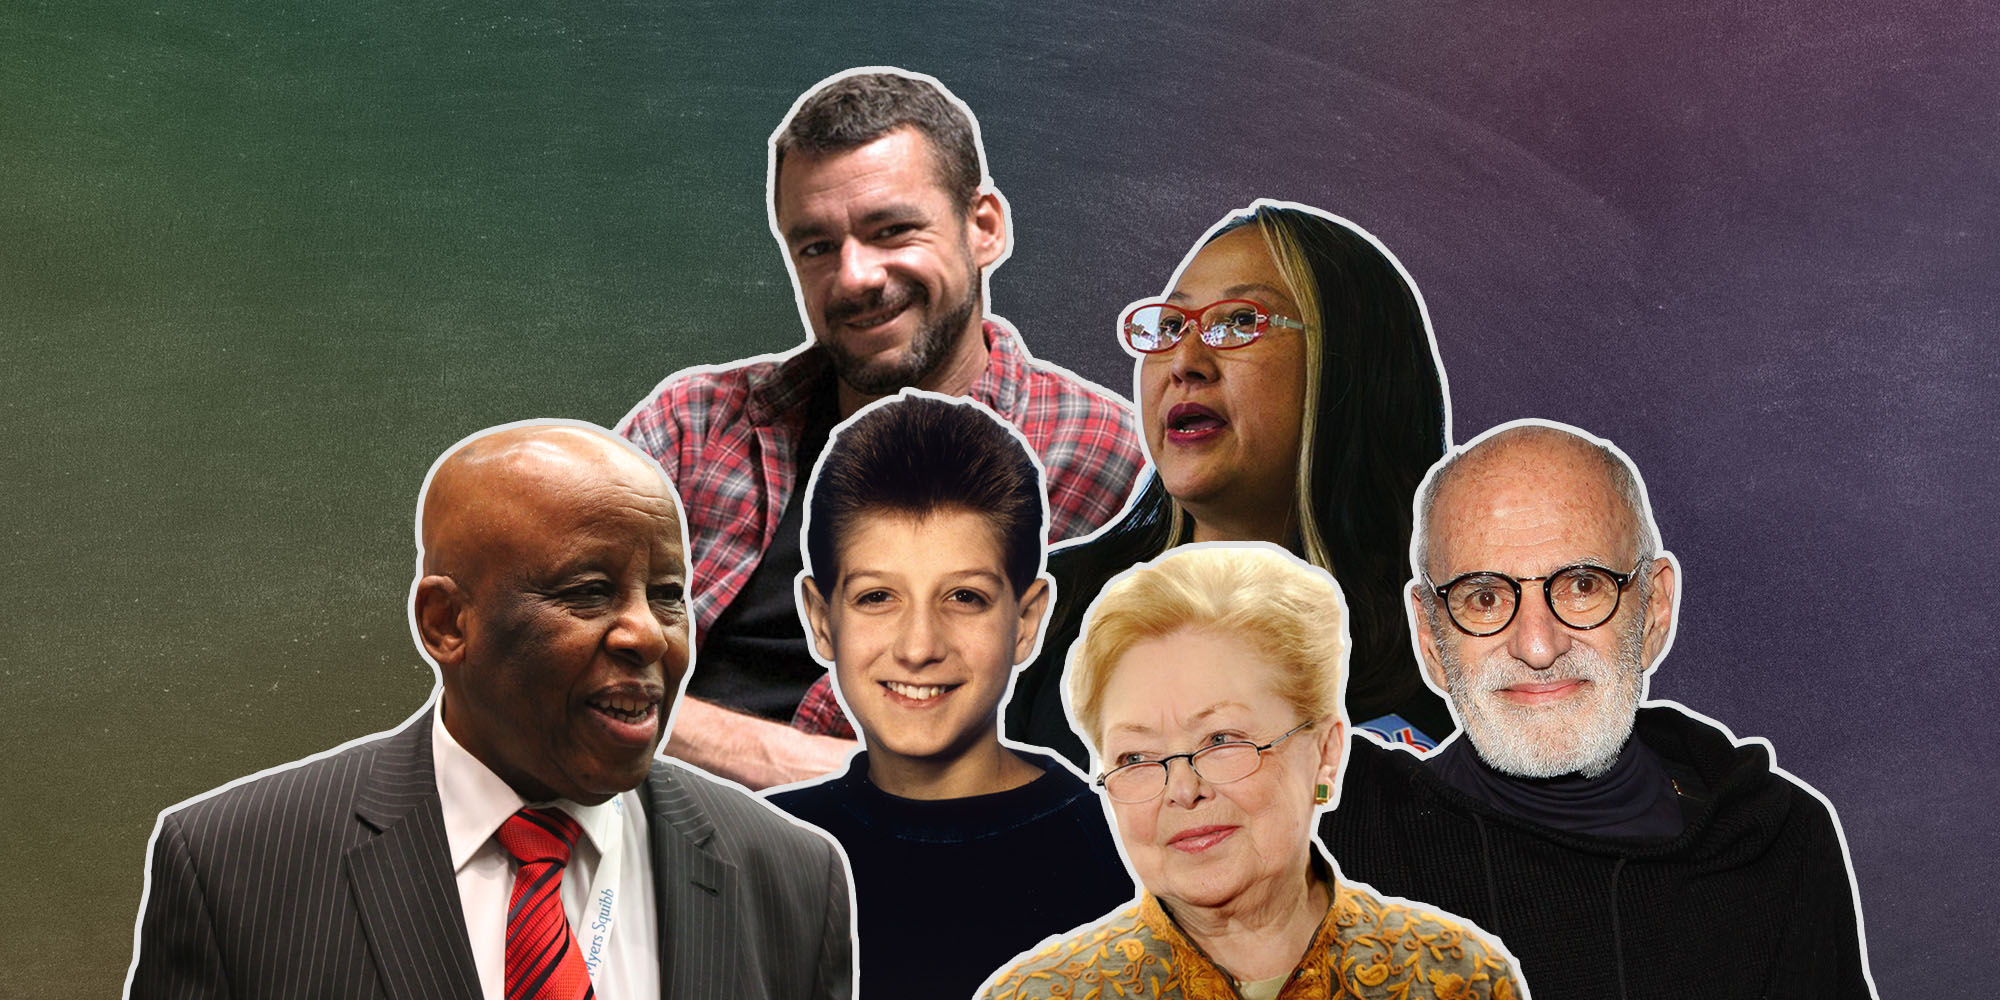 Profiles in Courage: Here Are 6 Frontline Warriors in the Fight to End HIV